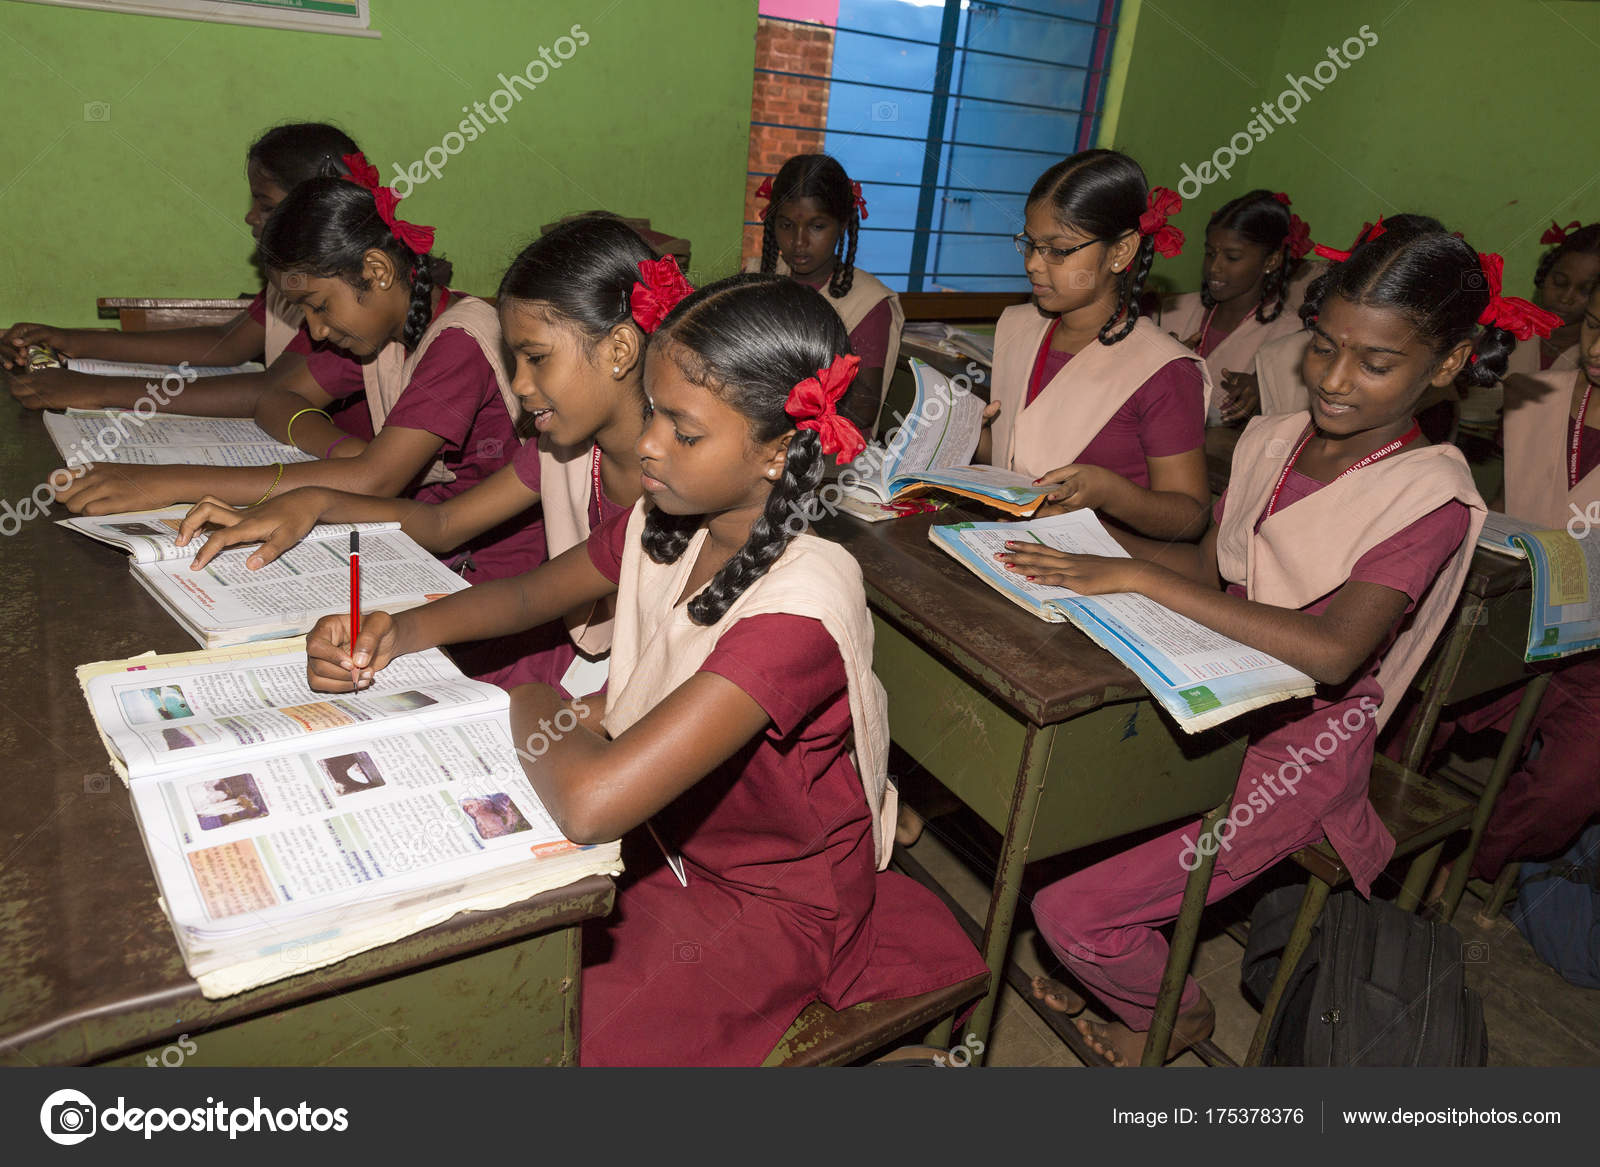 Documentary Editorial Image Unidentified School Children Study In Classroom At Government Public School Stock Editorial Photo C Catherinel Prod 175378376